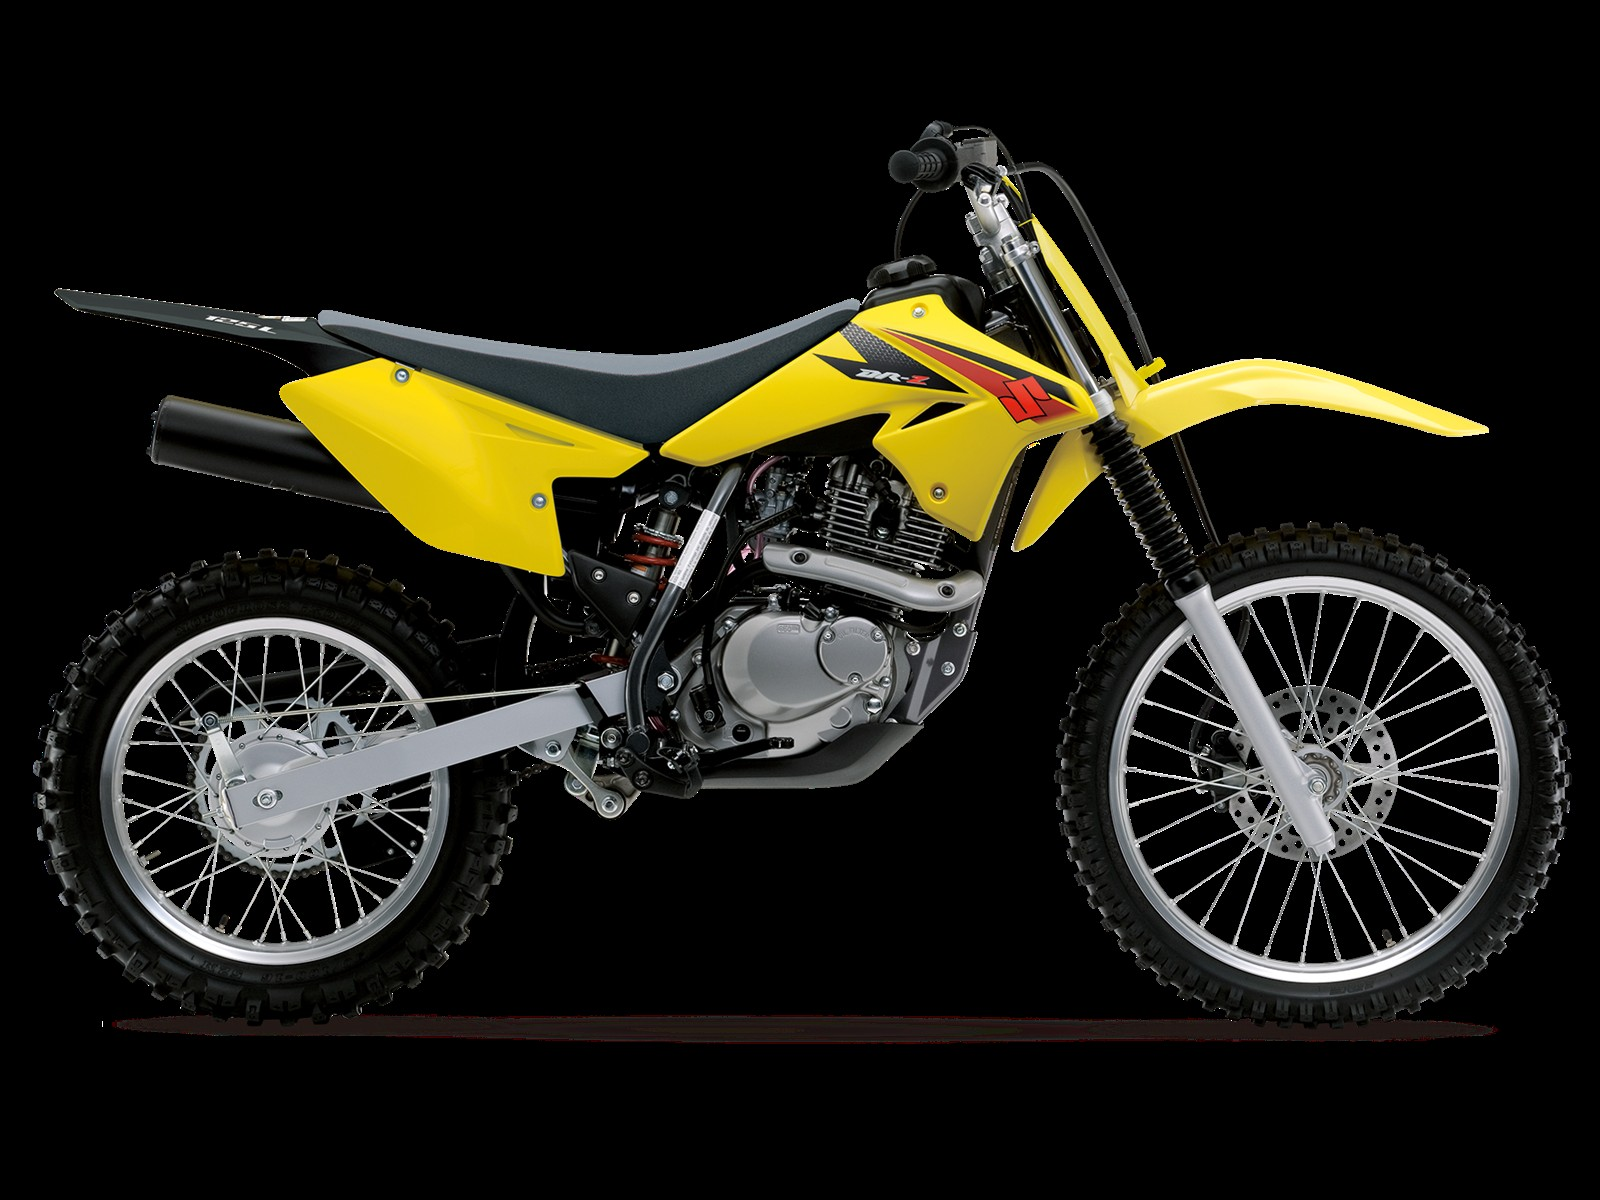 Honda Crf230f Parts Diagram Crf 450 Wiring 2008 Bbr Motorsports Inc Info By Make And Model Of